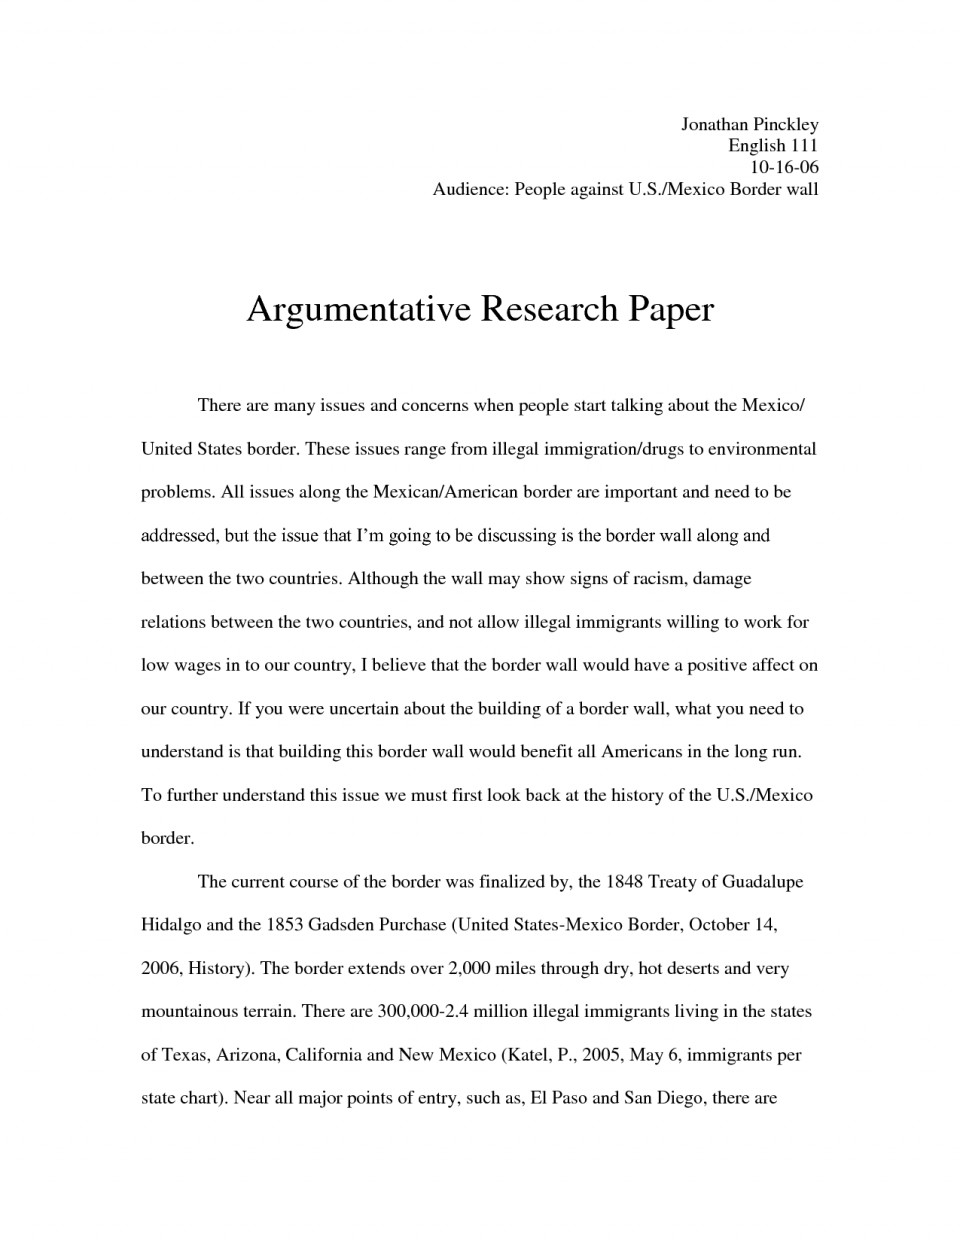 014 Uncategorized Debate20y Argumentative Thesis High School Topics Sentence Starters Outline Worksheet Structure20 For Research Rare A Paper Medical 960